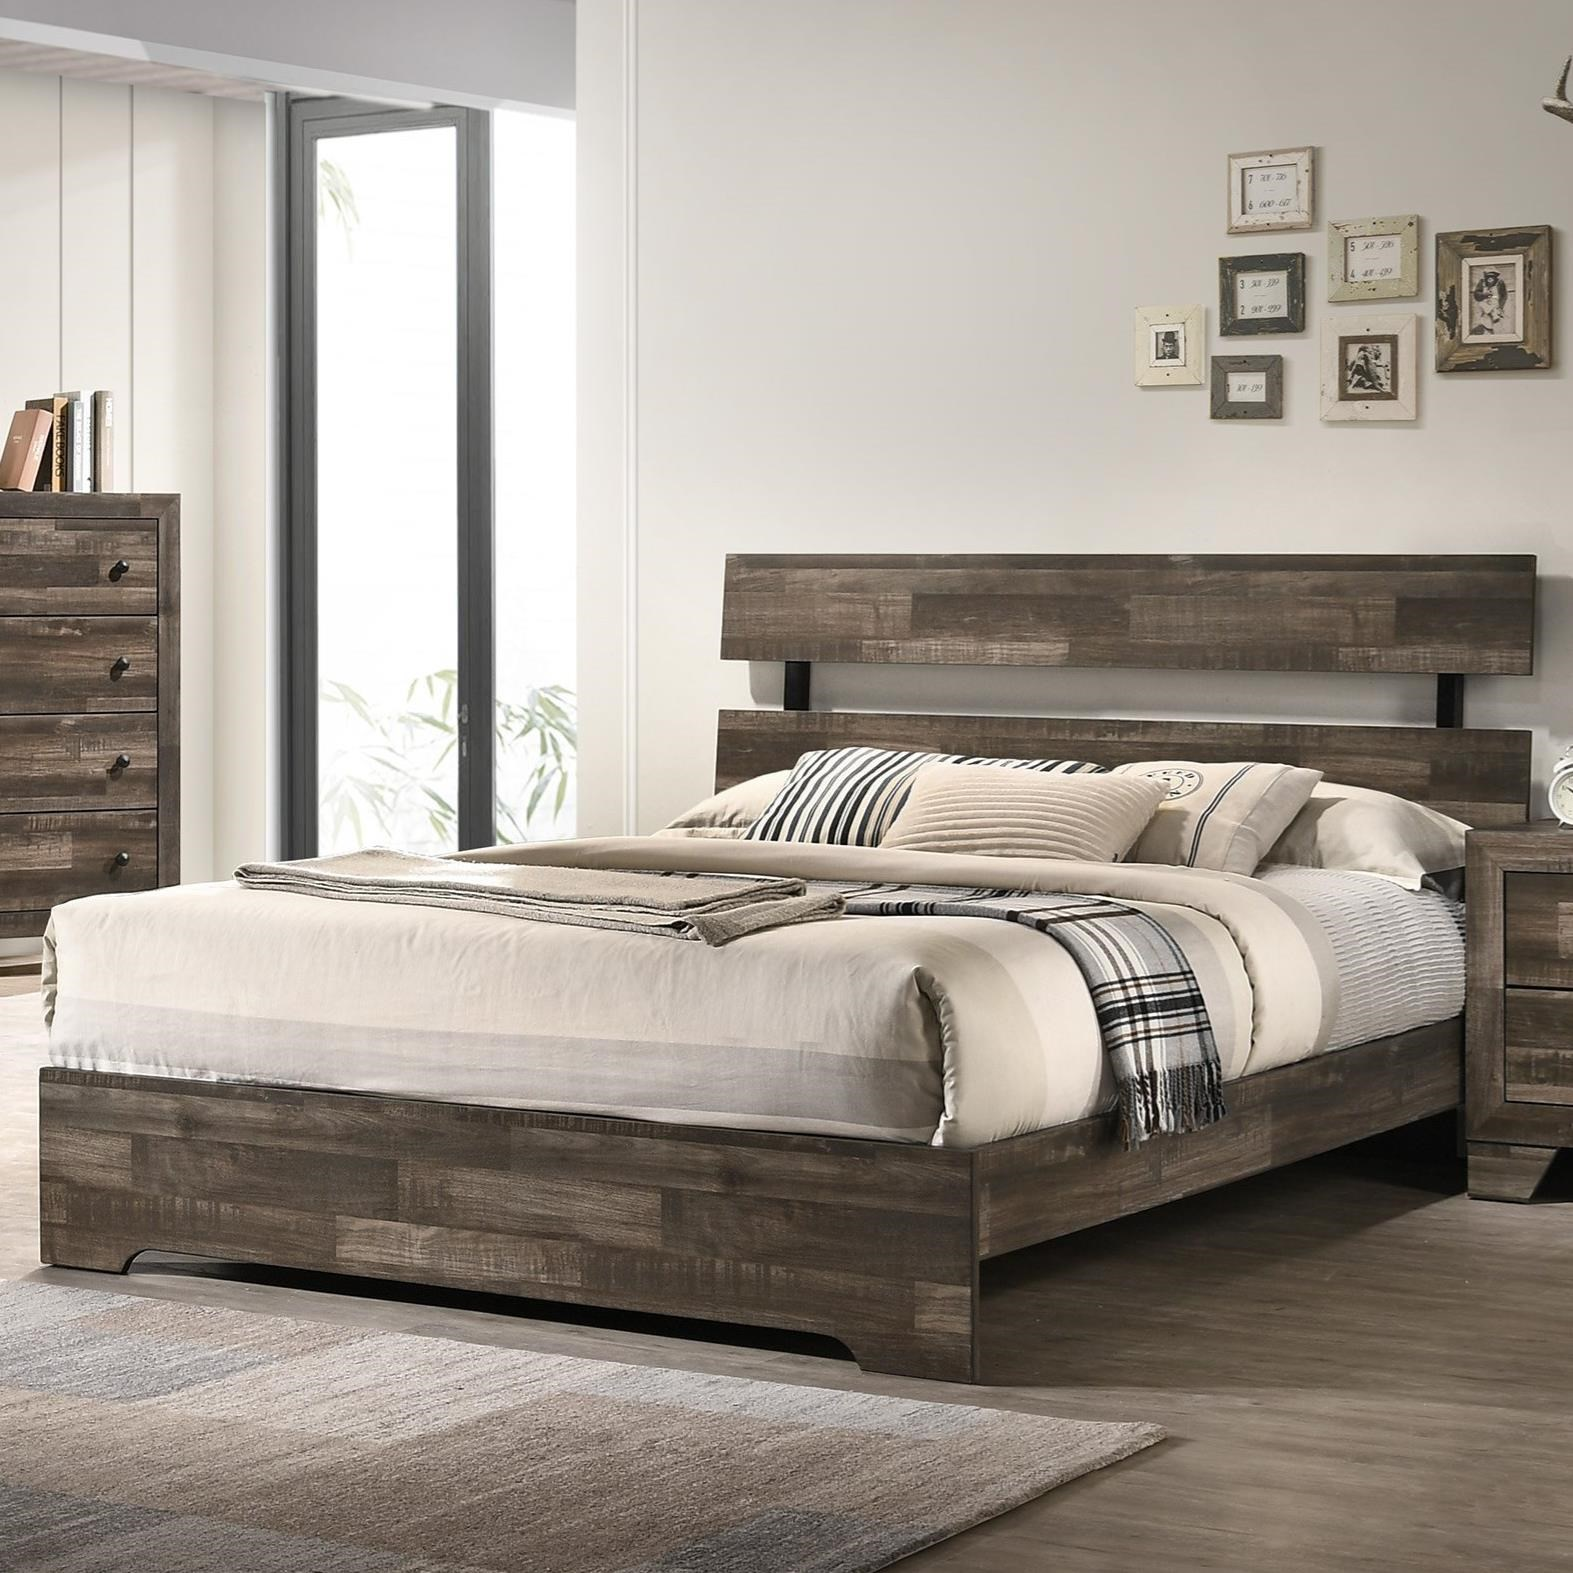 Atticus Full Bed by Crown Mark at Northeast Factory Direct